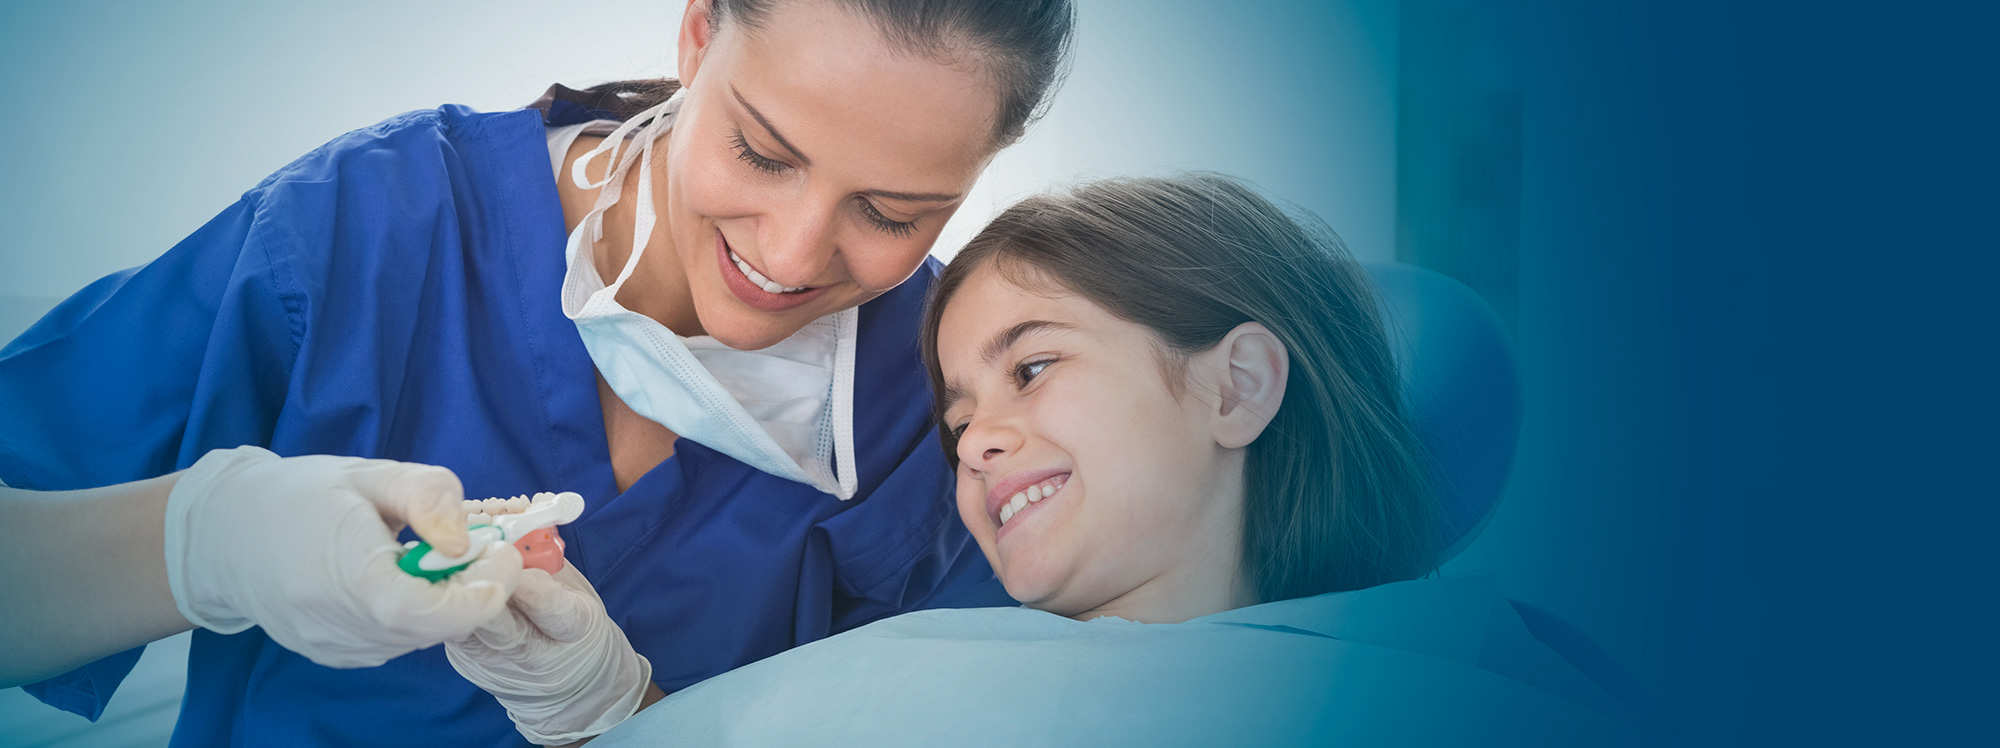 Smile Savvy is the All-in-One Internet Marketing Solution for Pediatric Dentists